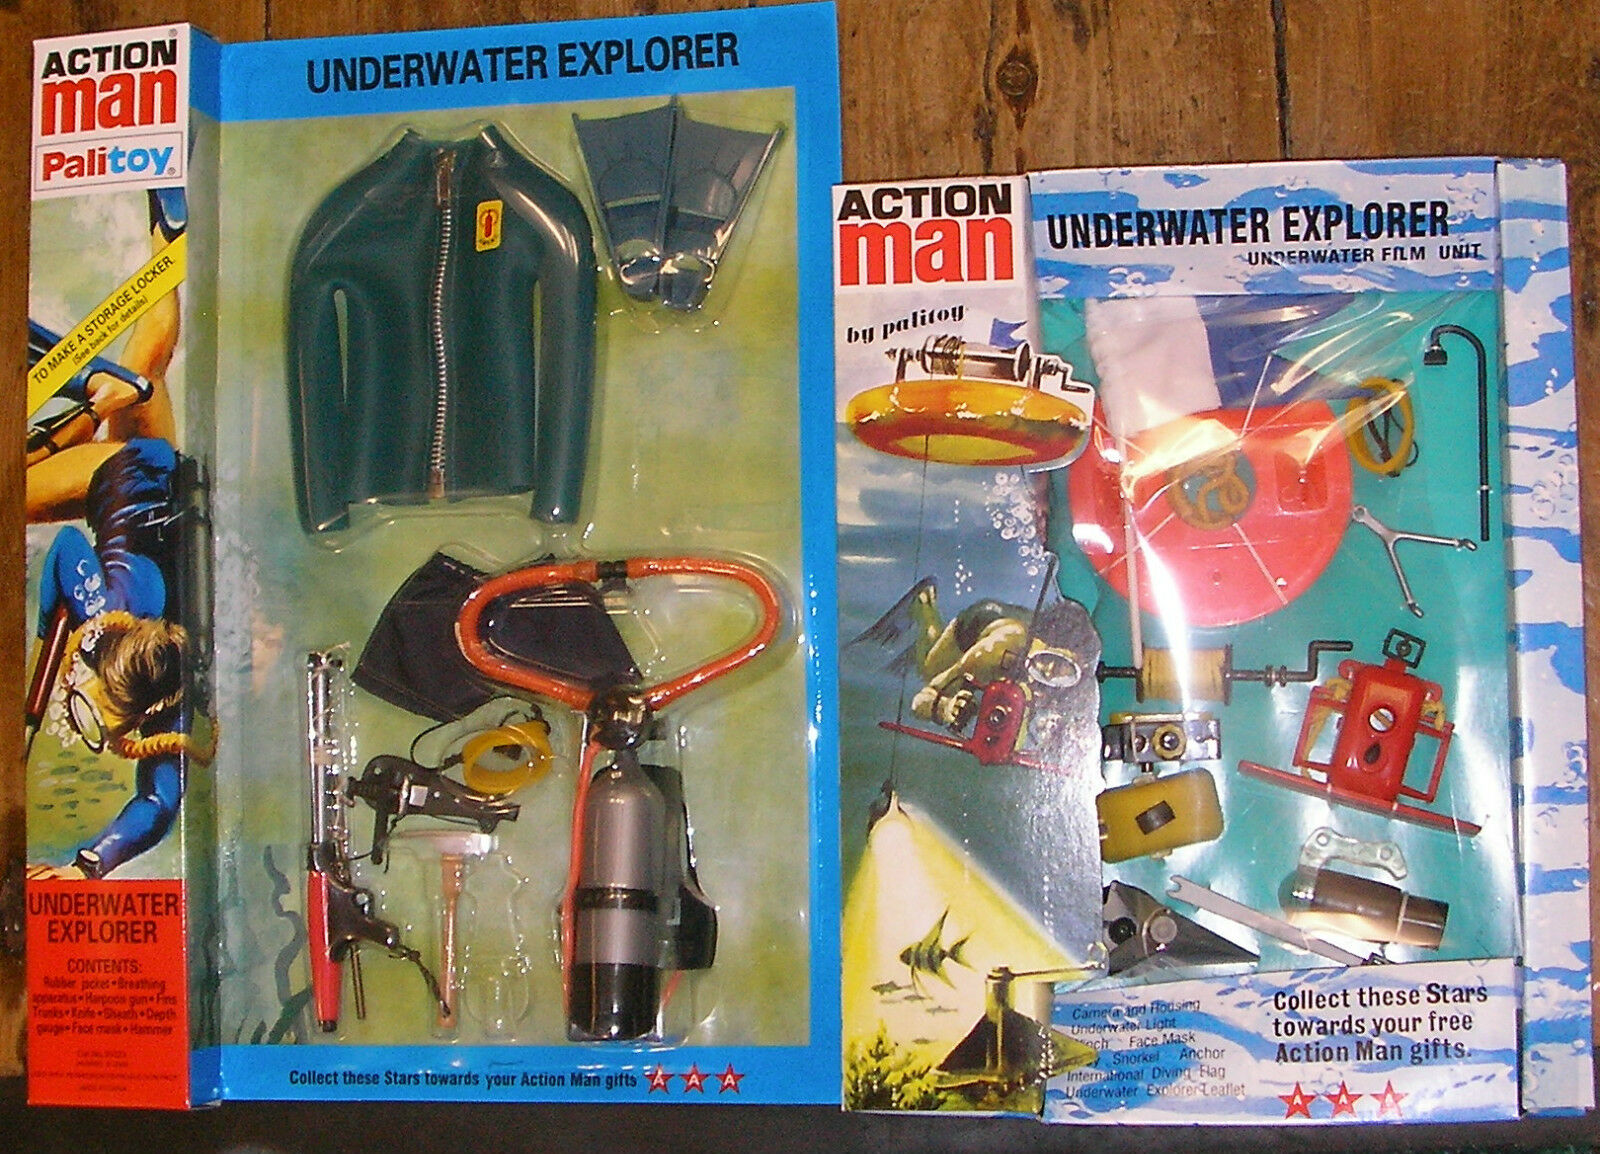 VINTAGE ACTION MAN 40th 40th 40th CARDED UNDERWATER EXPLORER Blau FROGMAN OUTFIT FILM UNIT c791f6